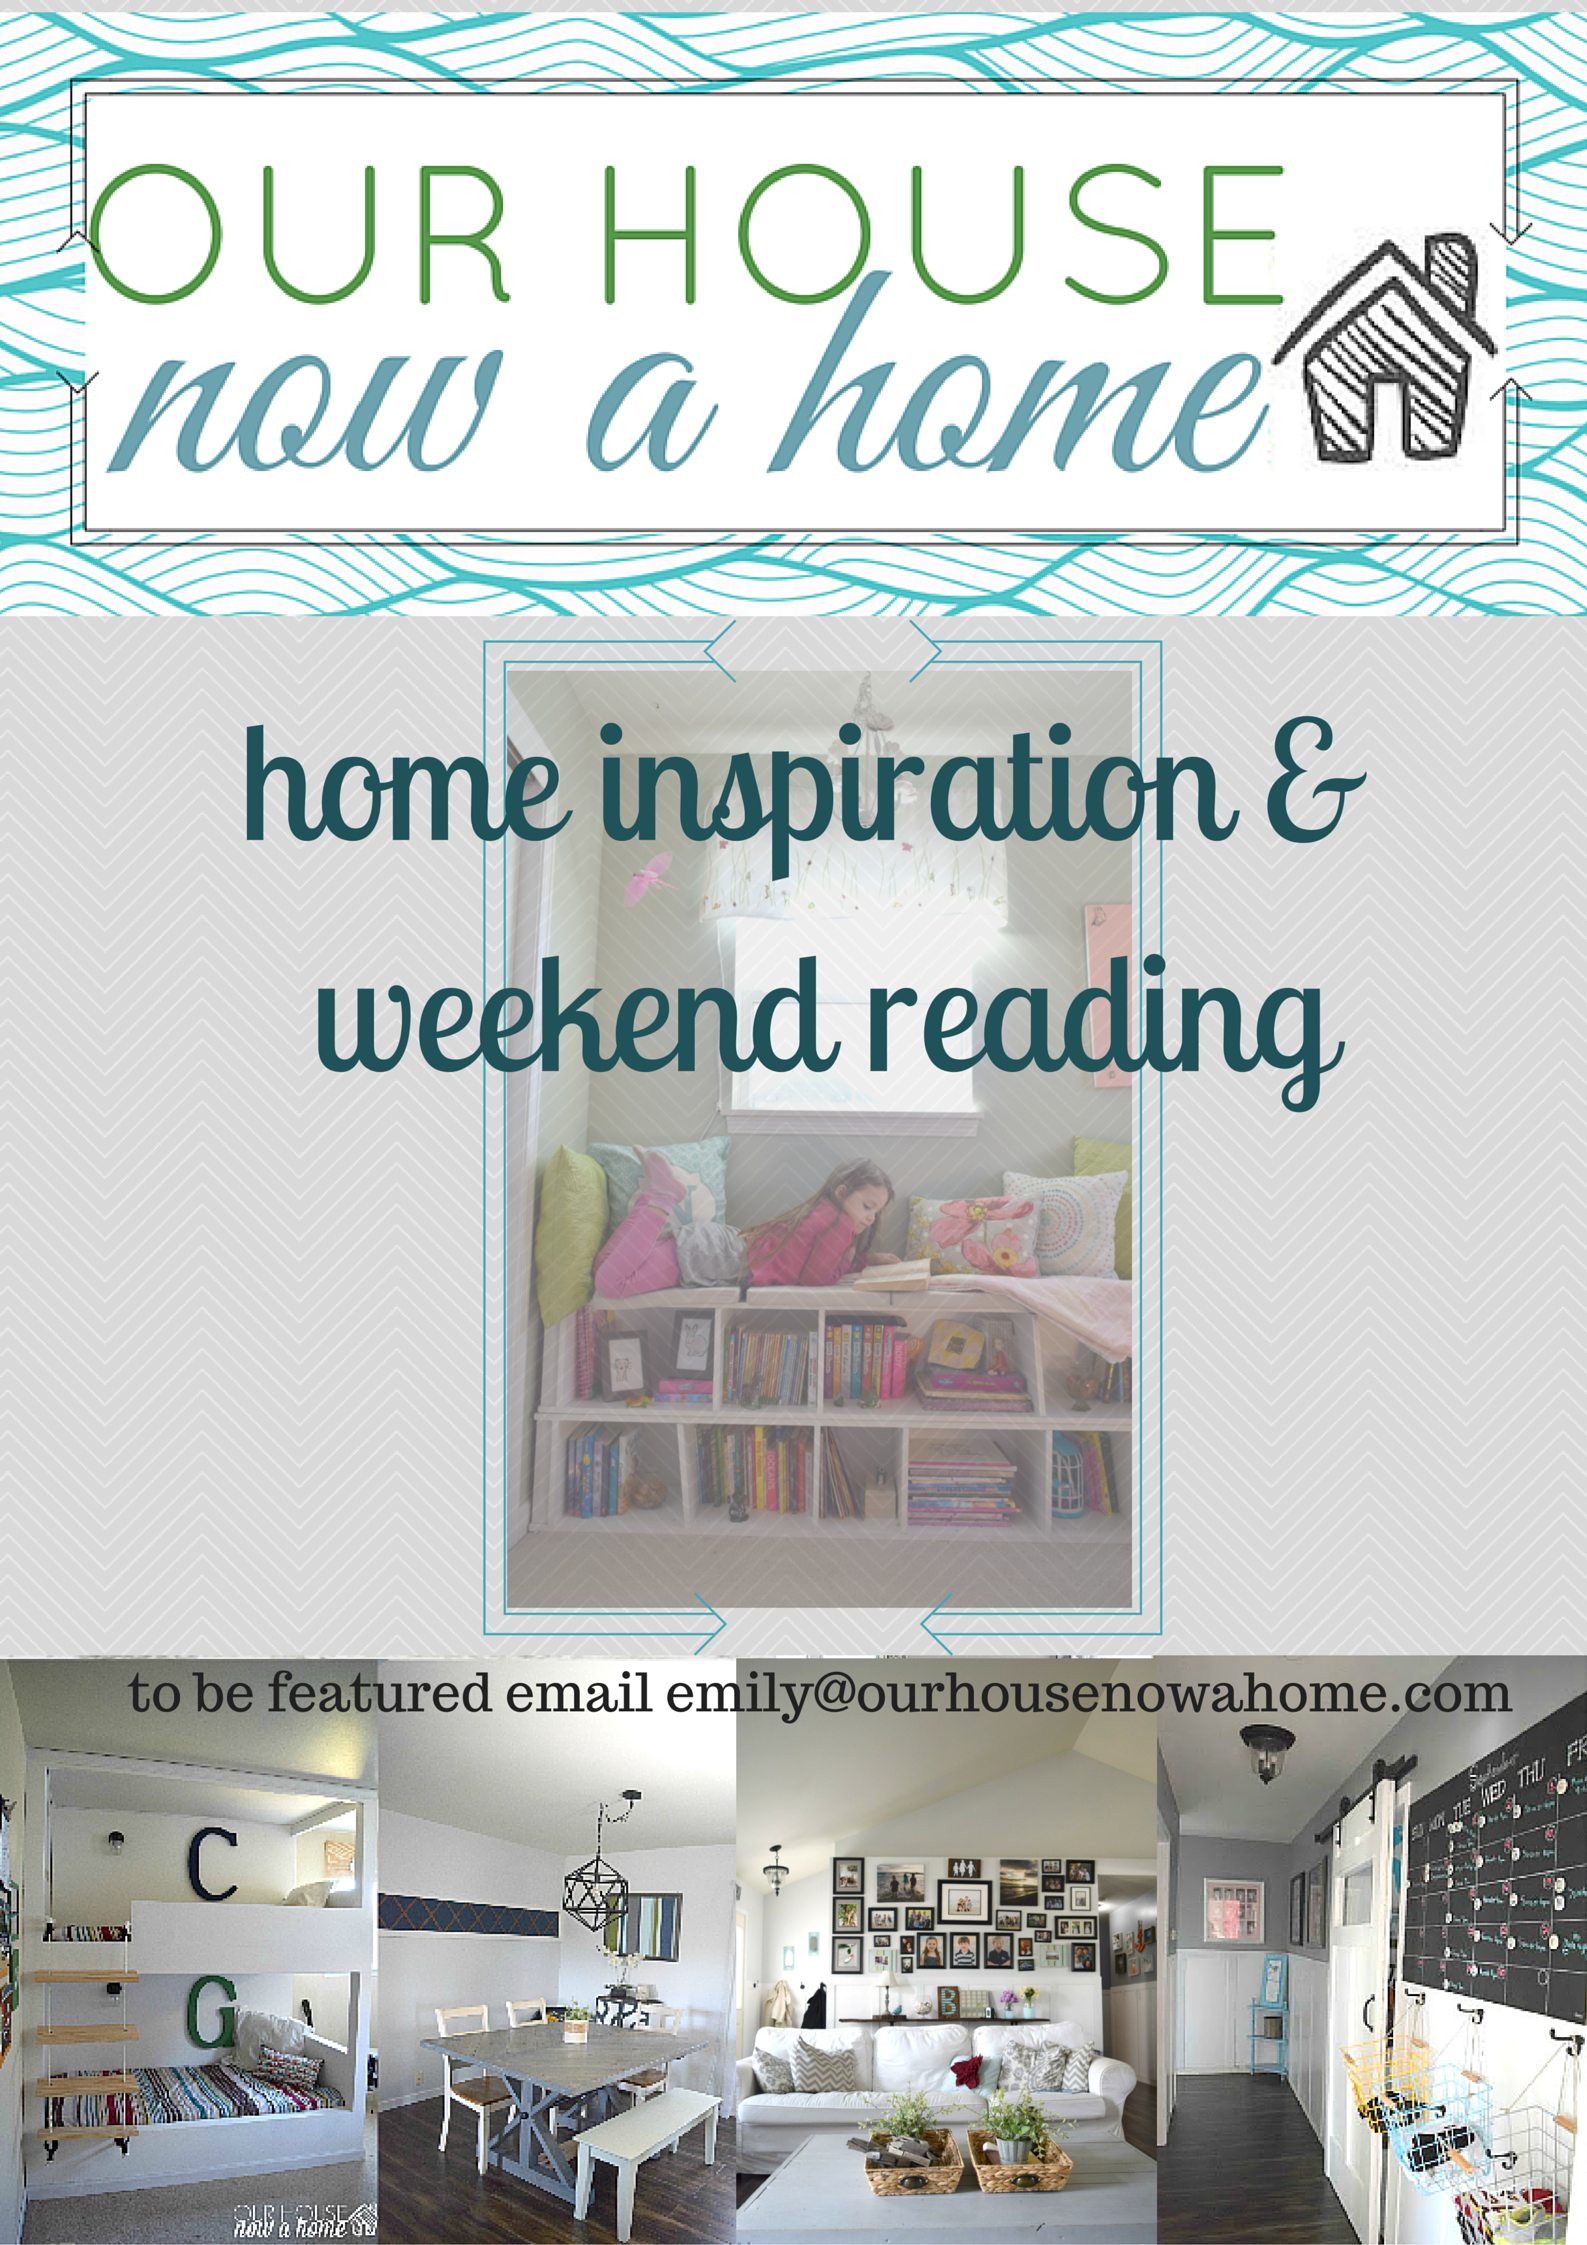 Home inspiration and weekend reading week 1